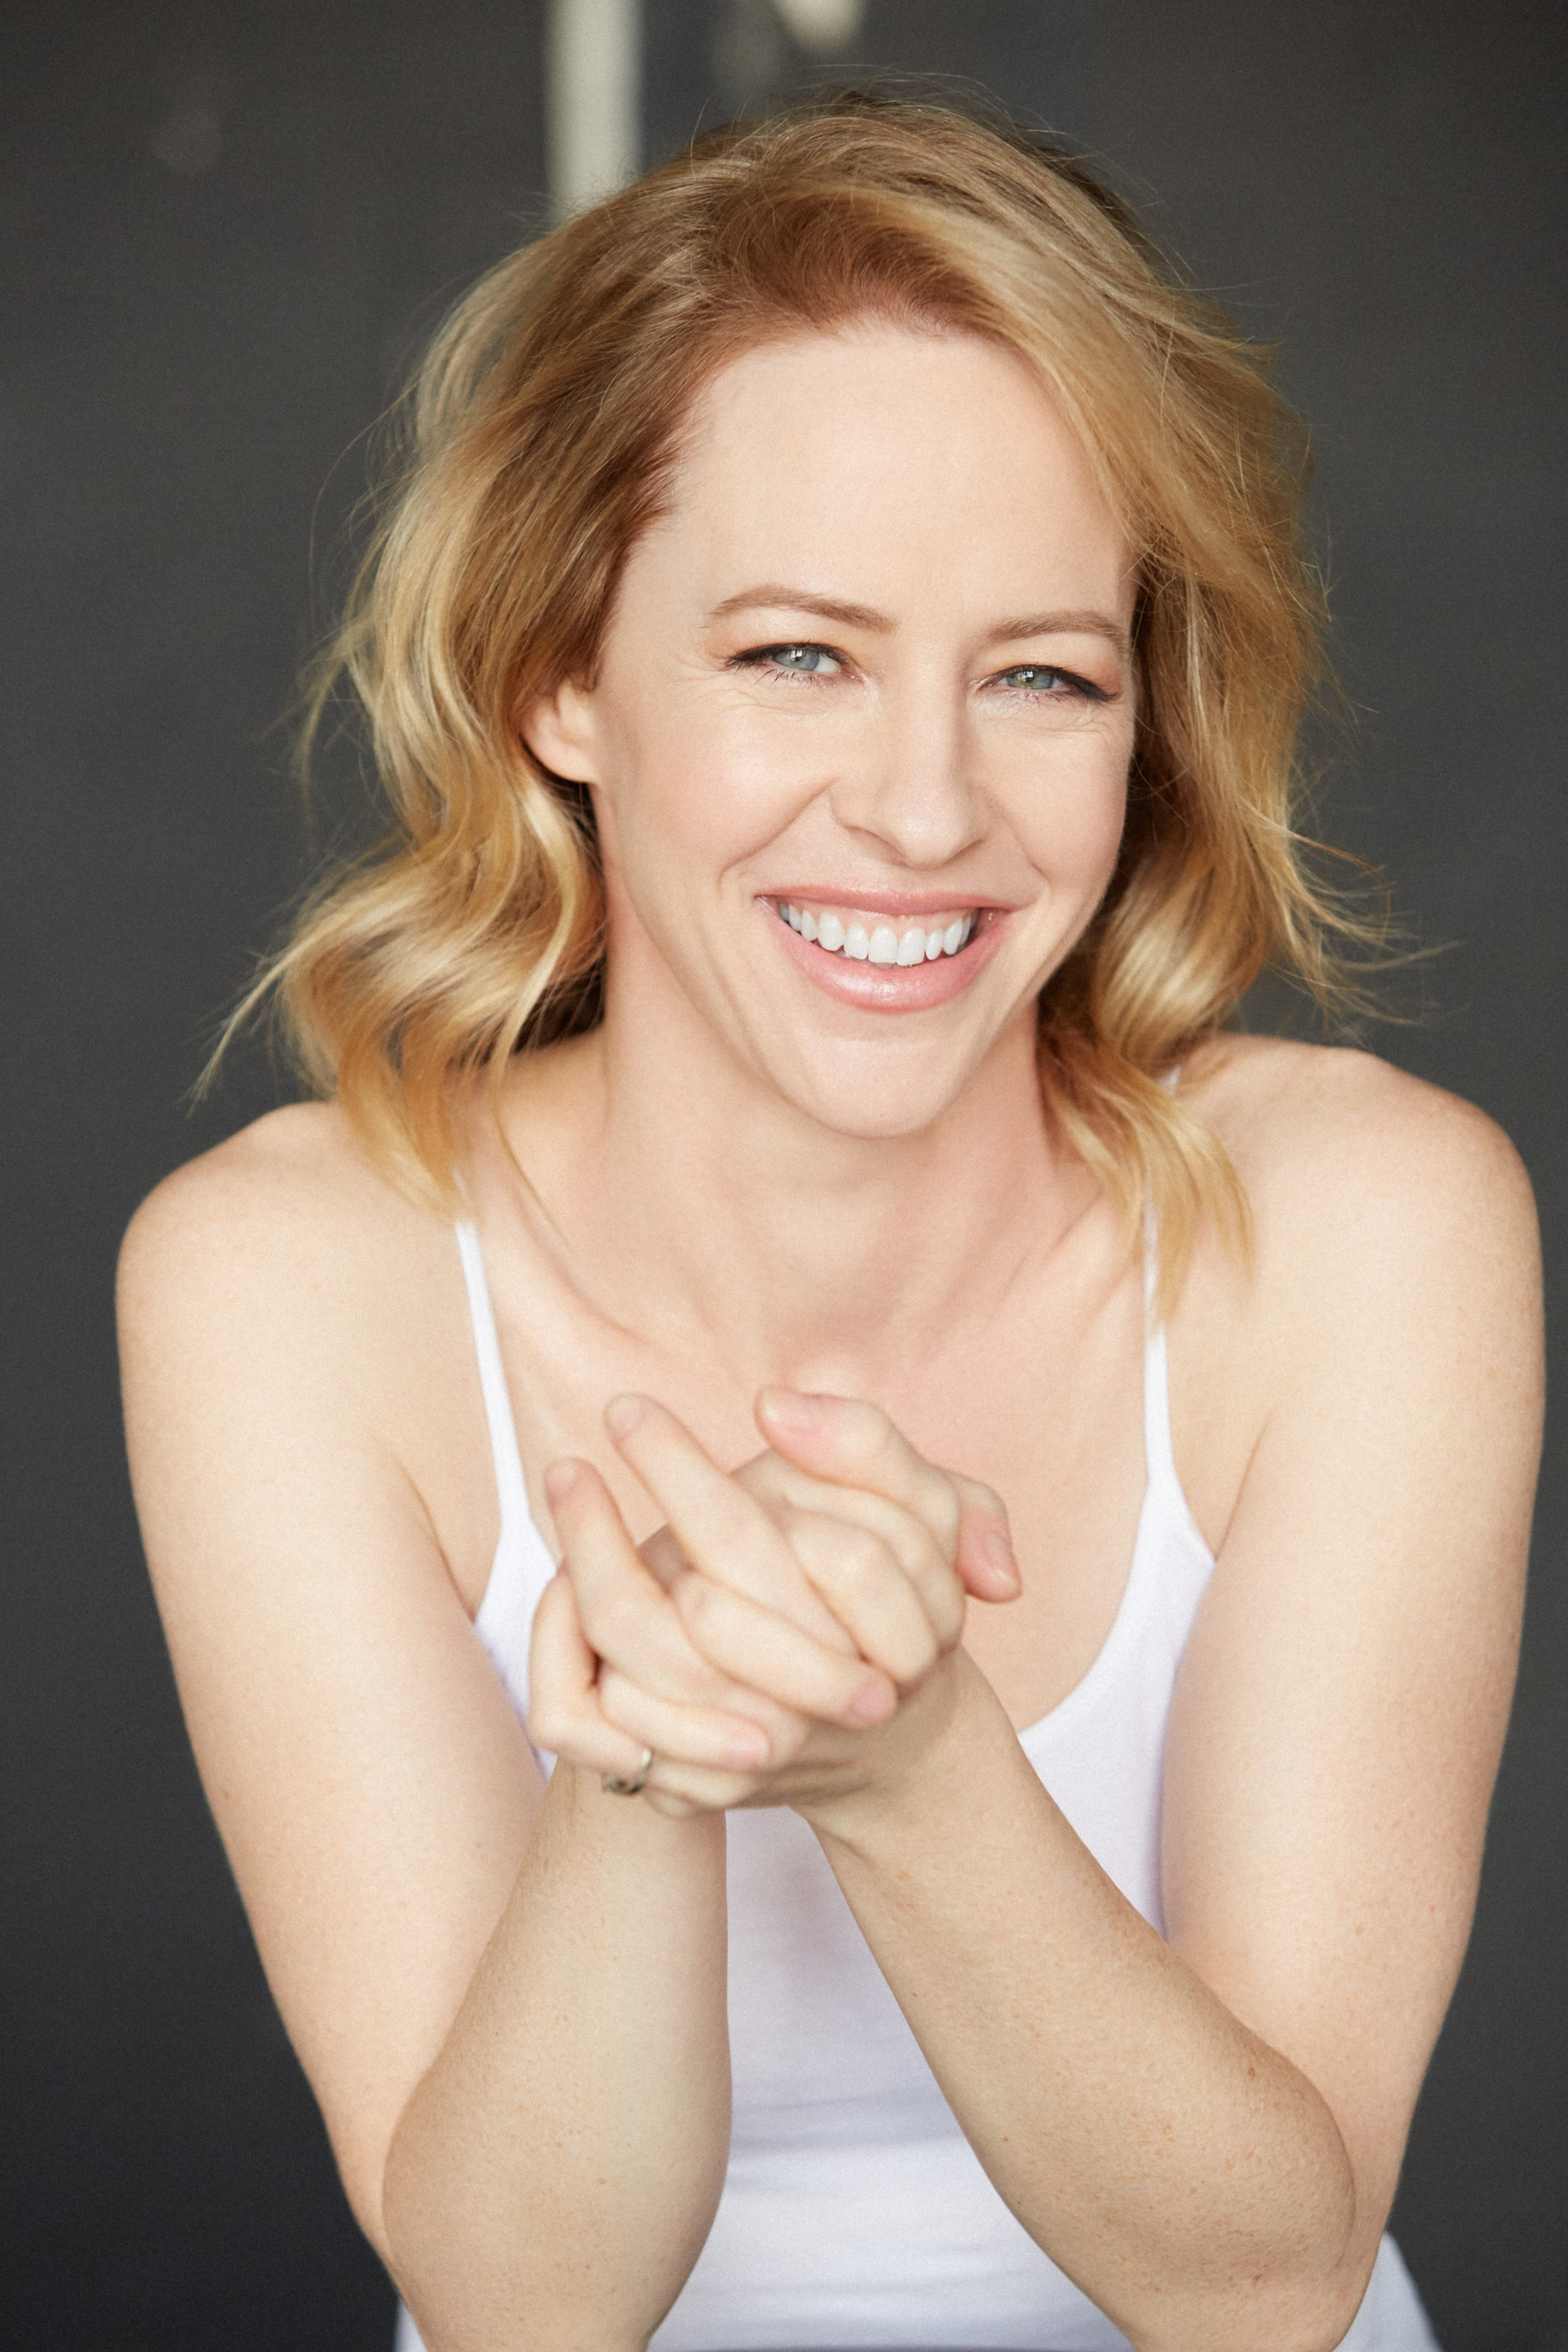 Amy Hargreaves nudes (57 photo), Ass, Cleavage, Boobs, cleavage 2017